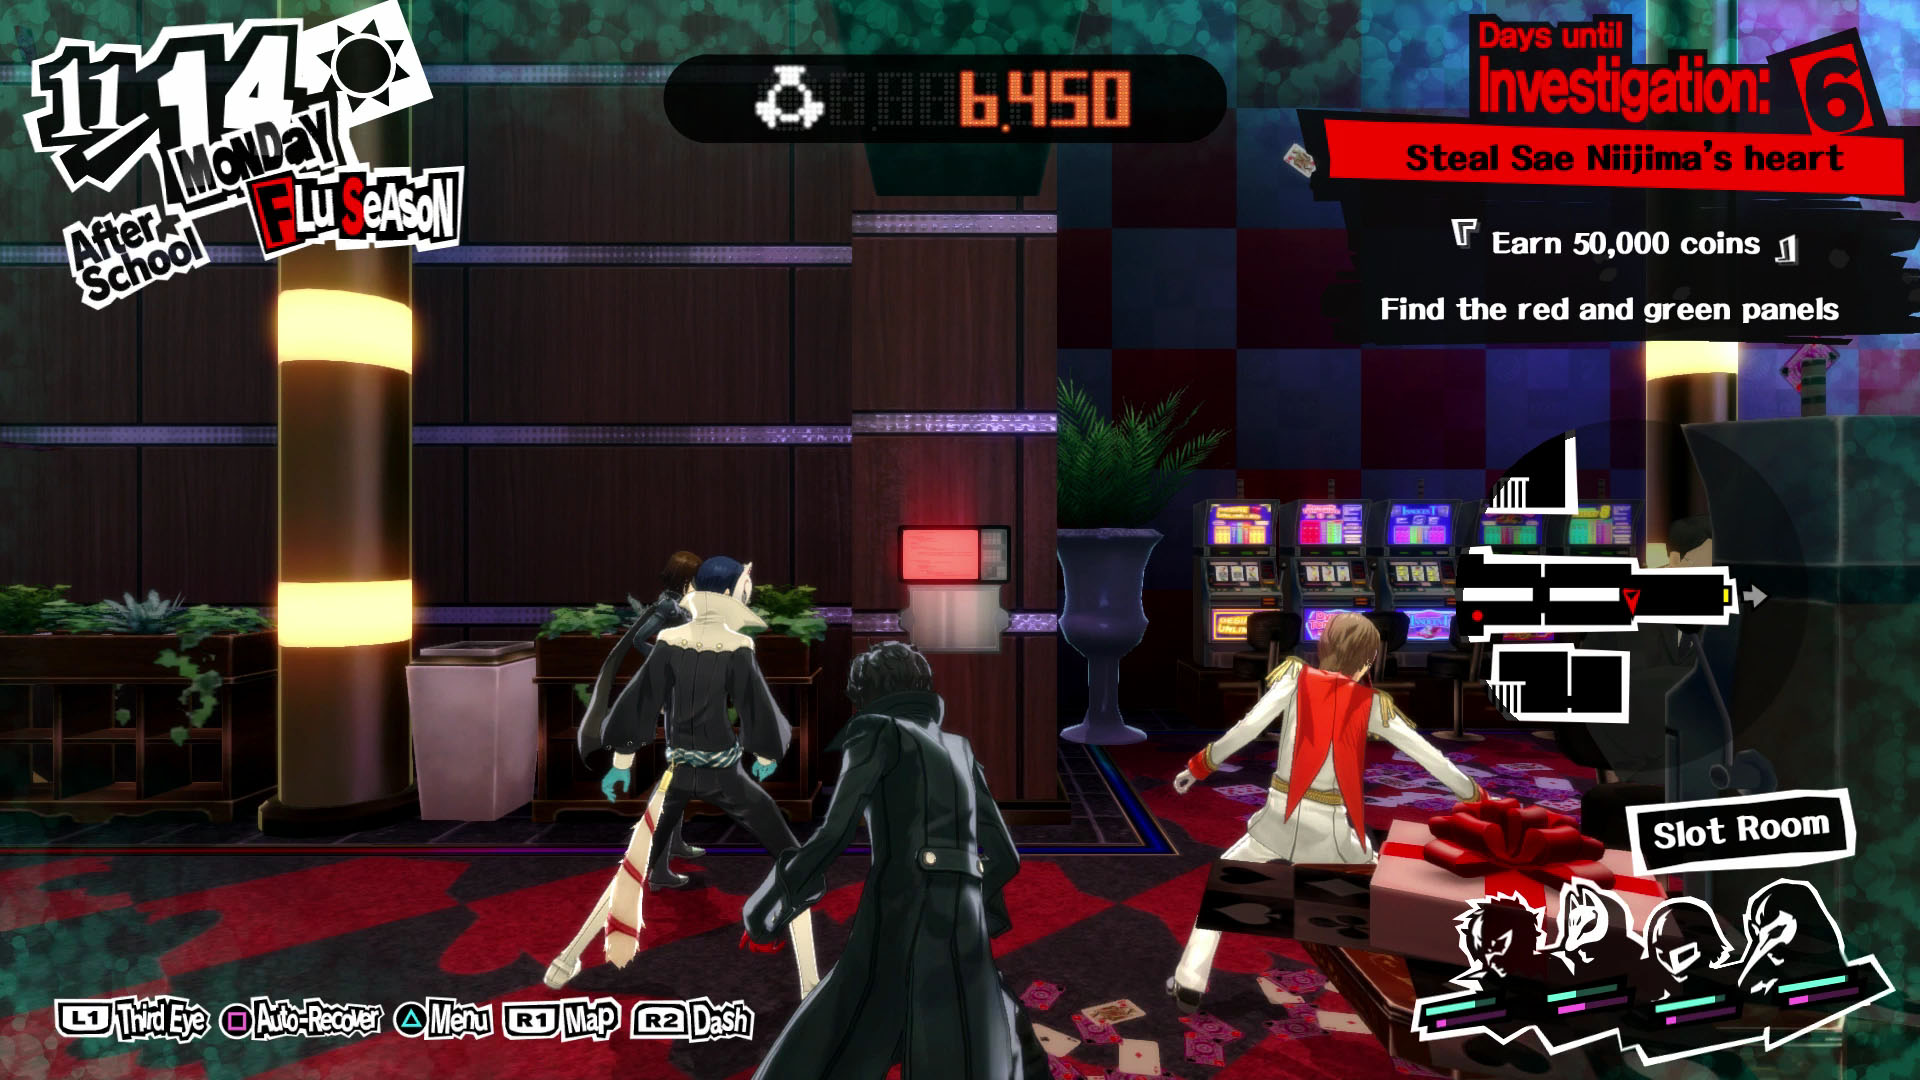 persona 5 casino red and green